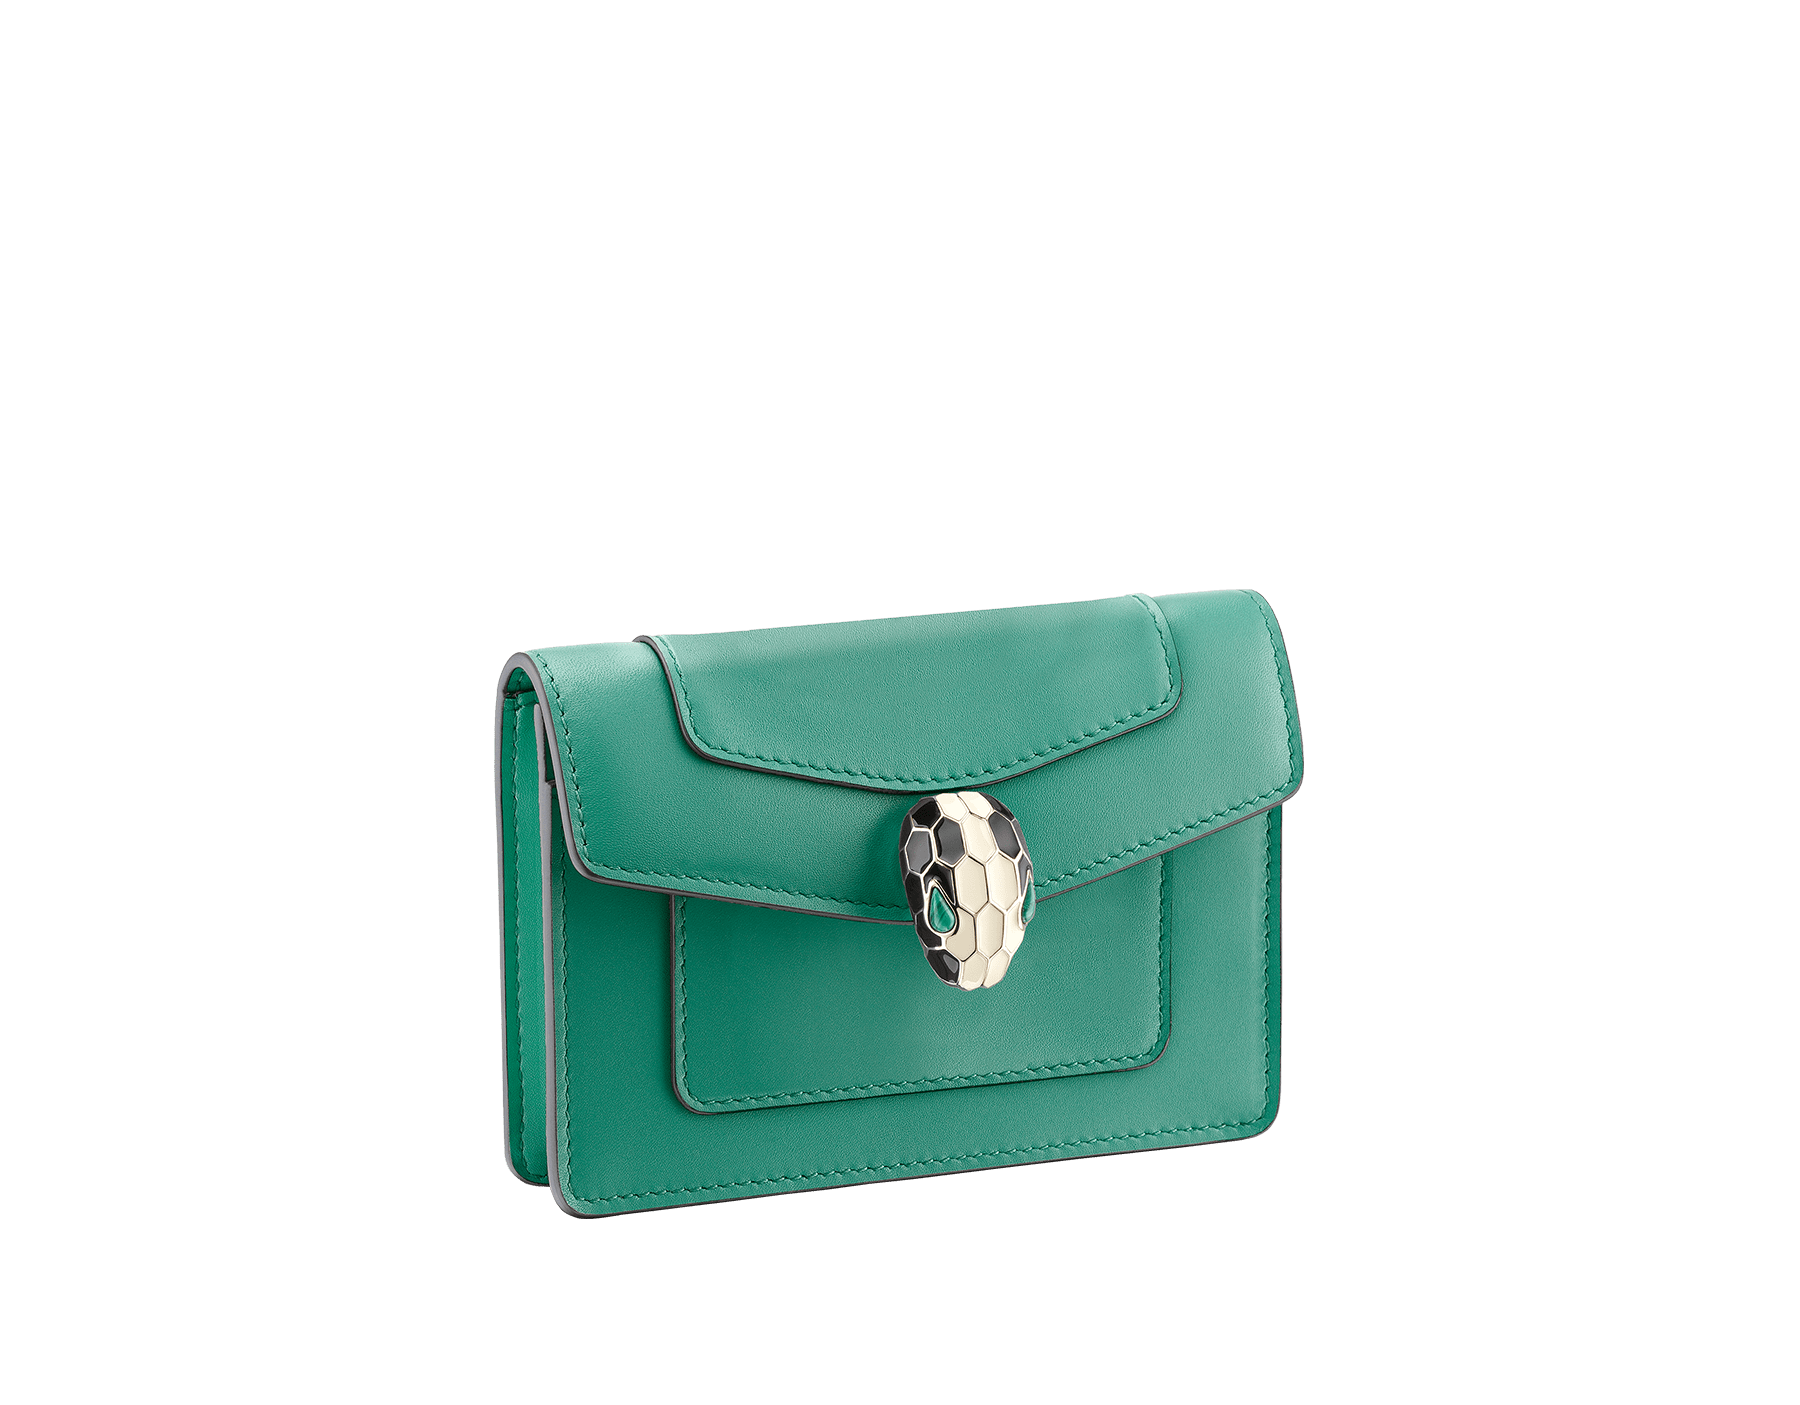 Pocket credit card holder in emerald green and violet amethyst calf leather, with amethyst purple nappa lining. Brass light gold plated Serpenti head stud closure in black and white enamel, with eyes in green malachite. 285149 image 1